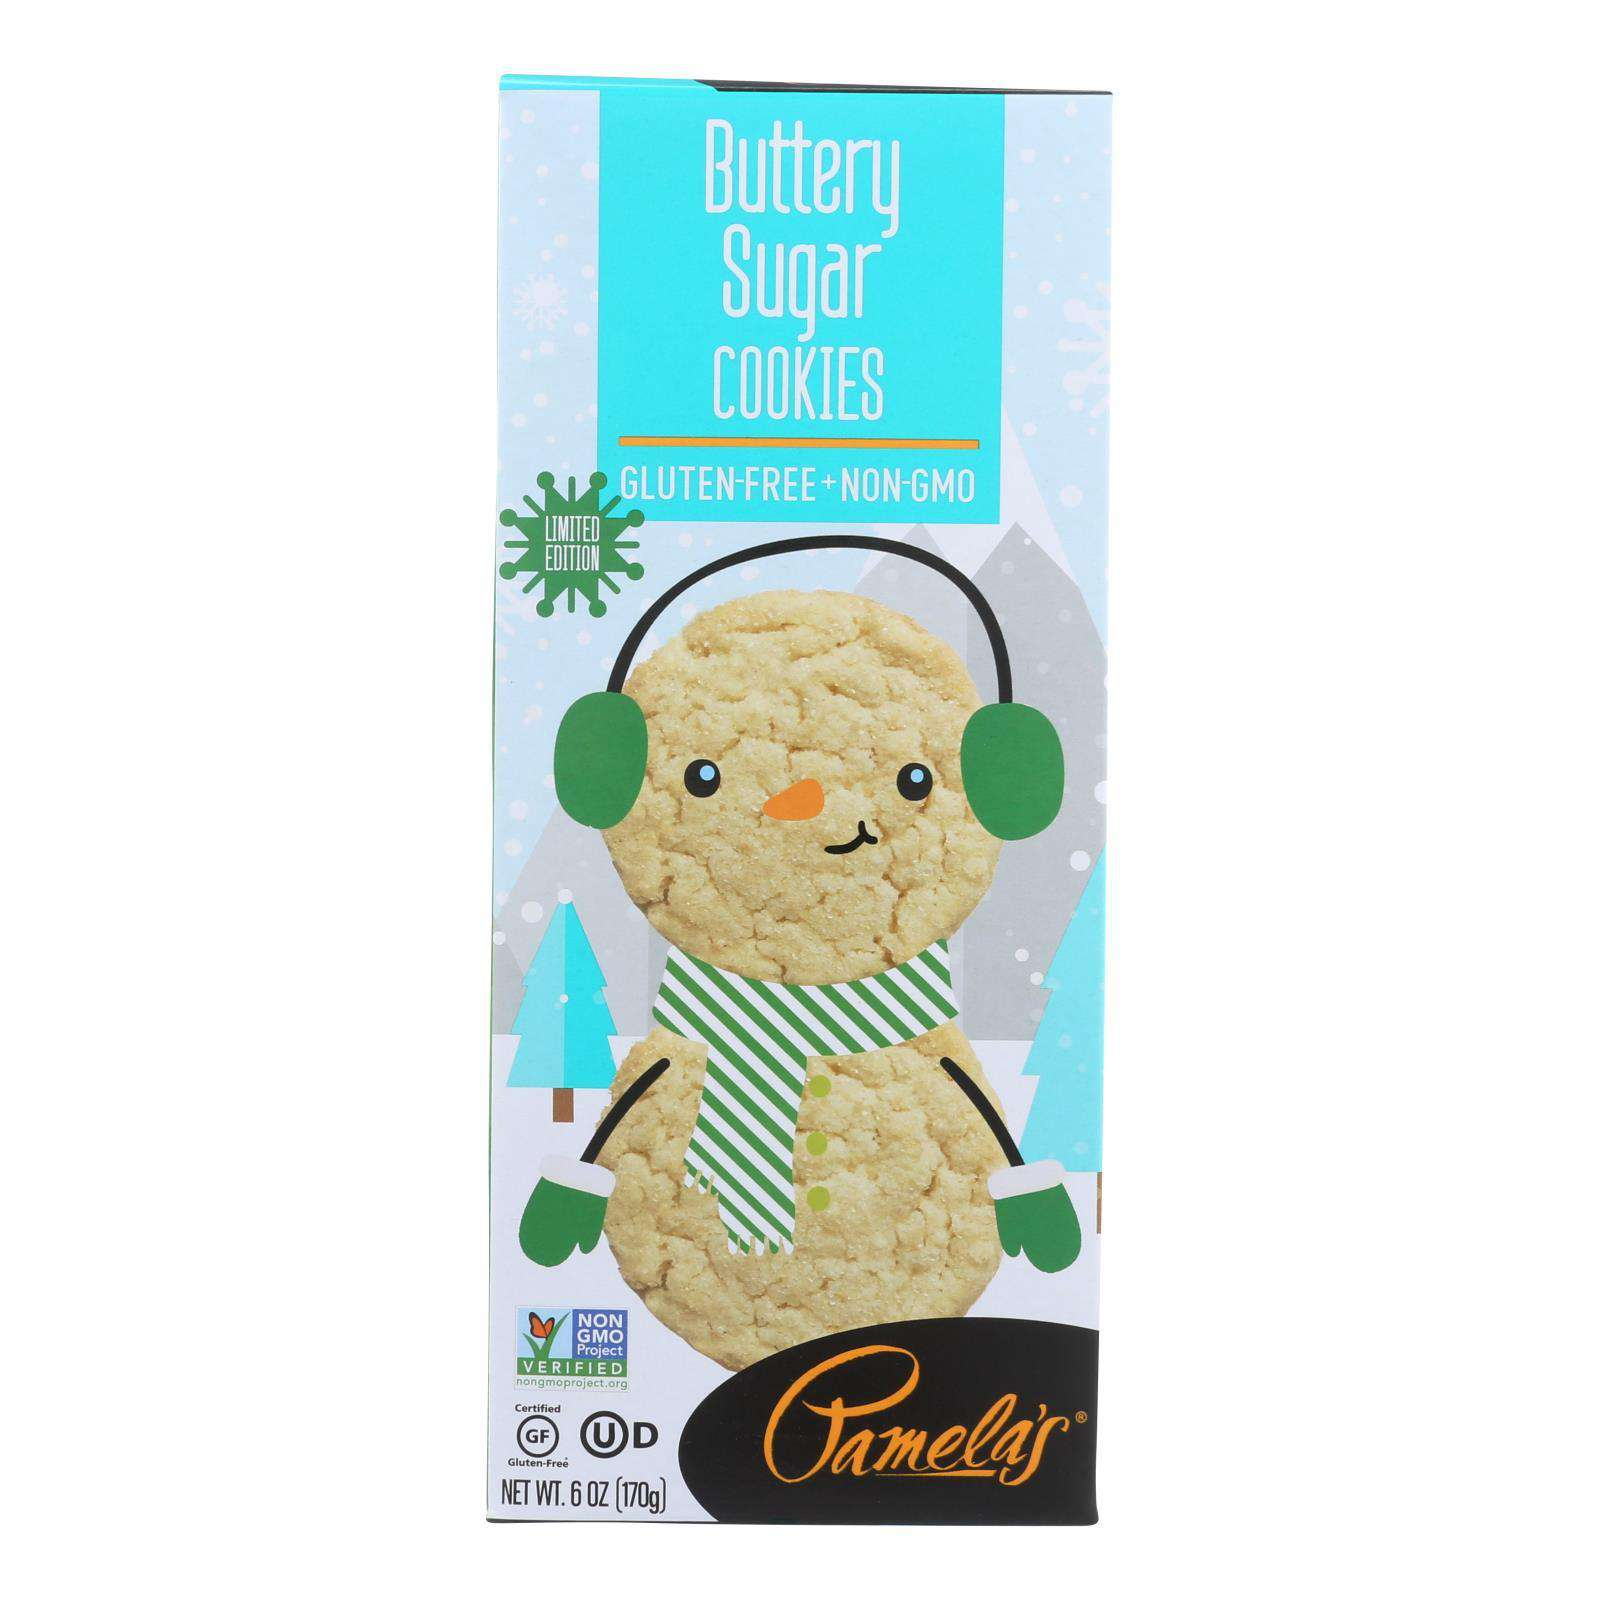 Pamela's Products - Limited Edition Cookies - Buttery Sugar Cookies - Case Of 6 - 6 Oz. - BeeGreen